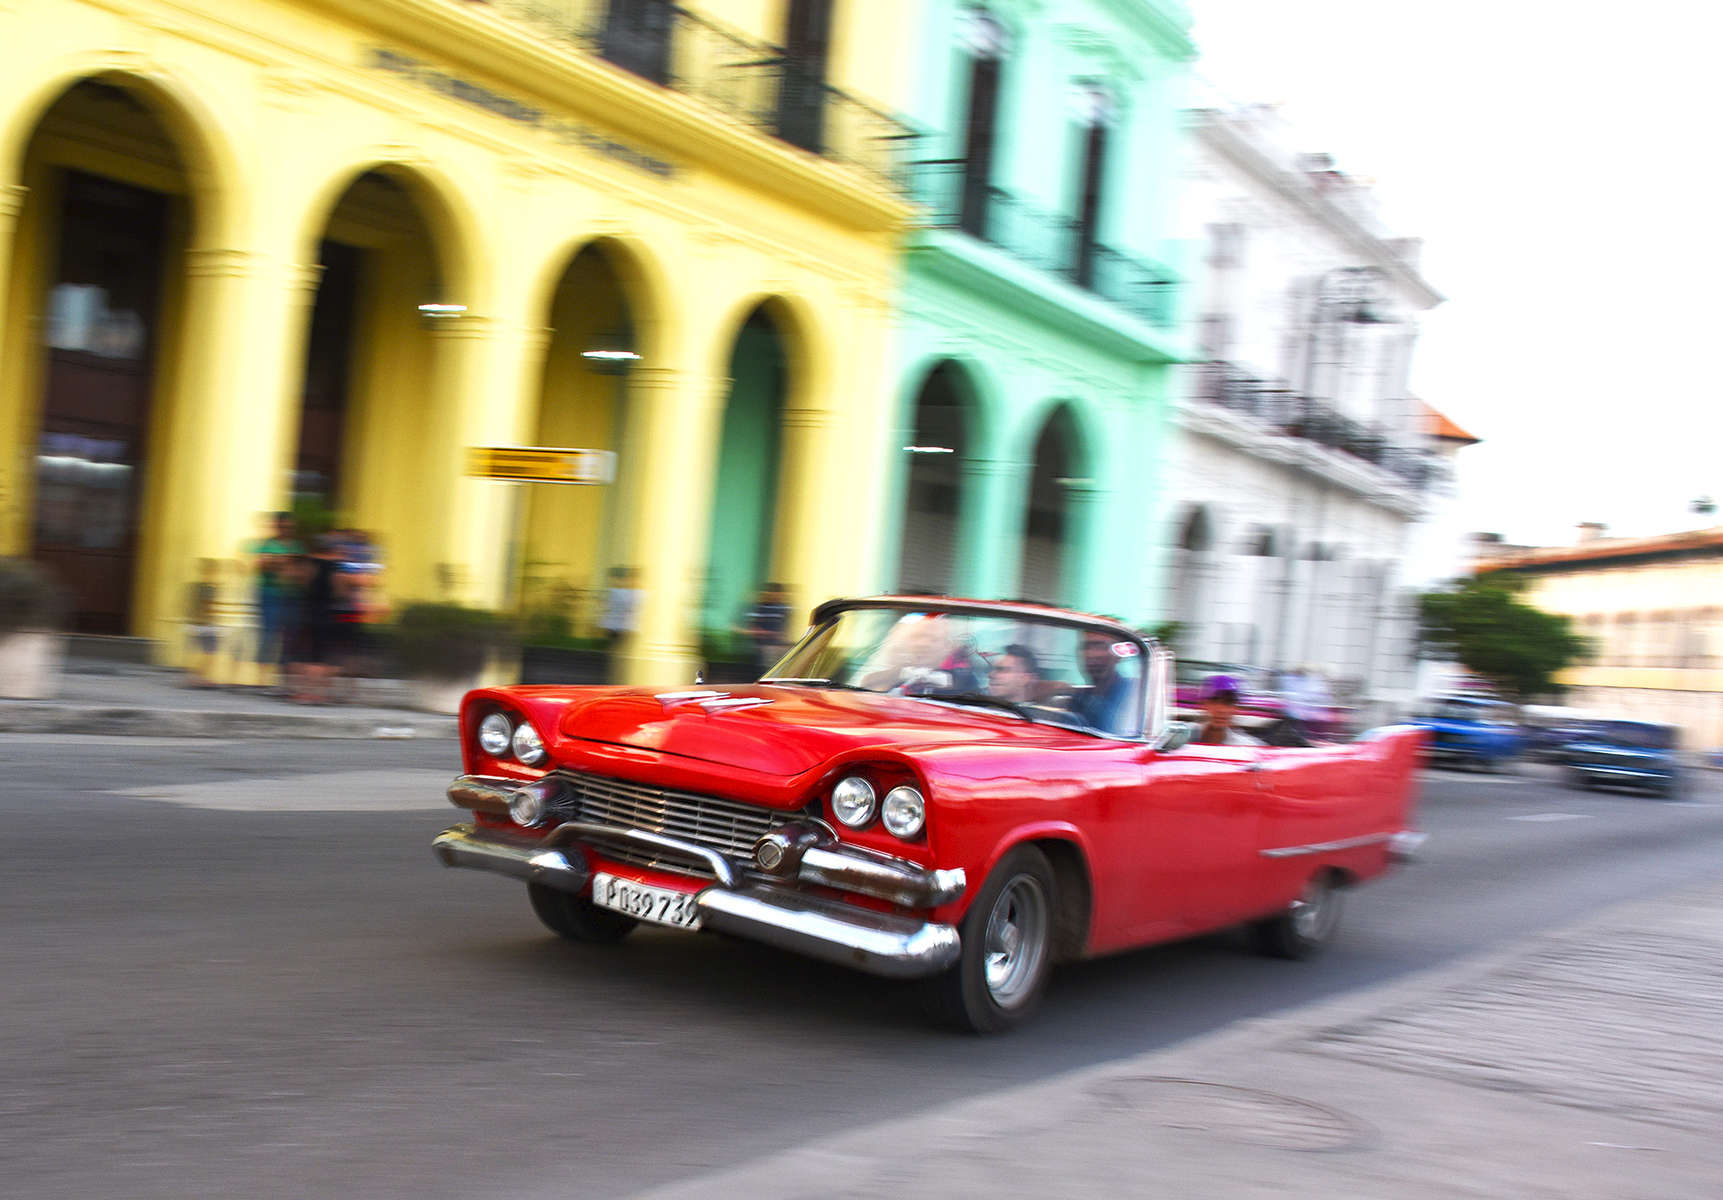 Photo of young people driving a red car with colorful buildings in the background in Old Havana, Cuba.